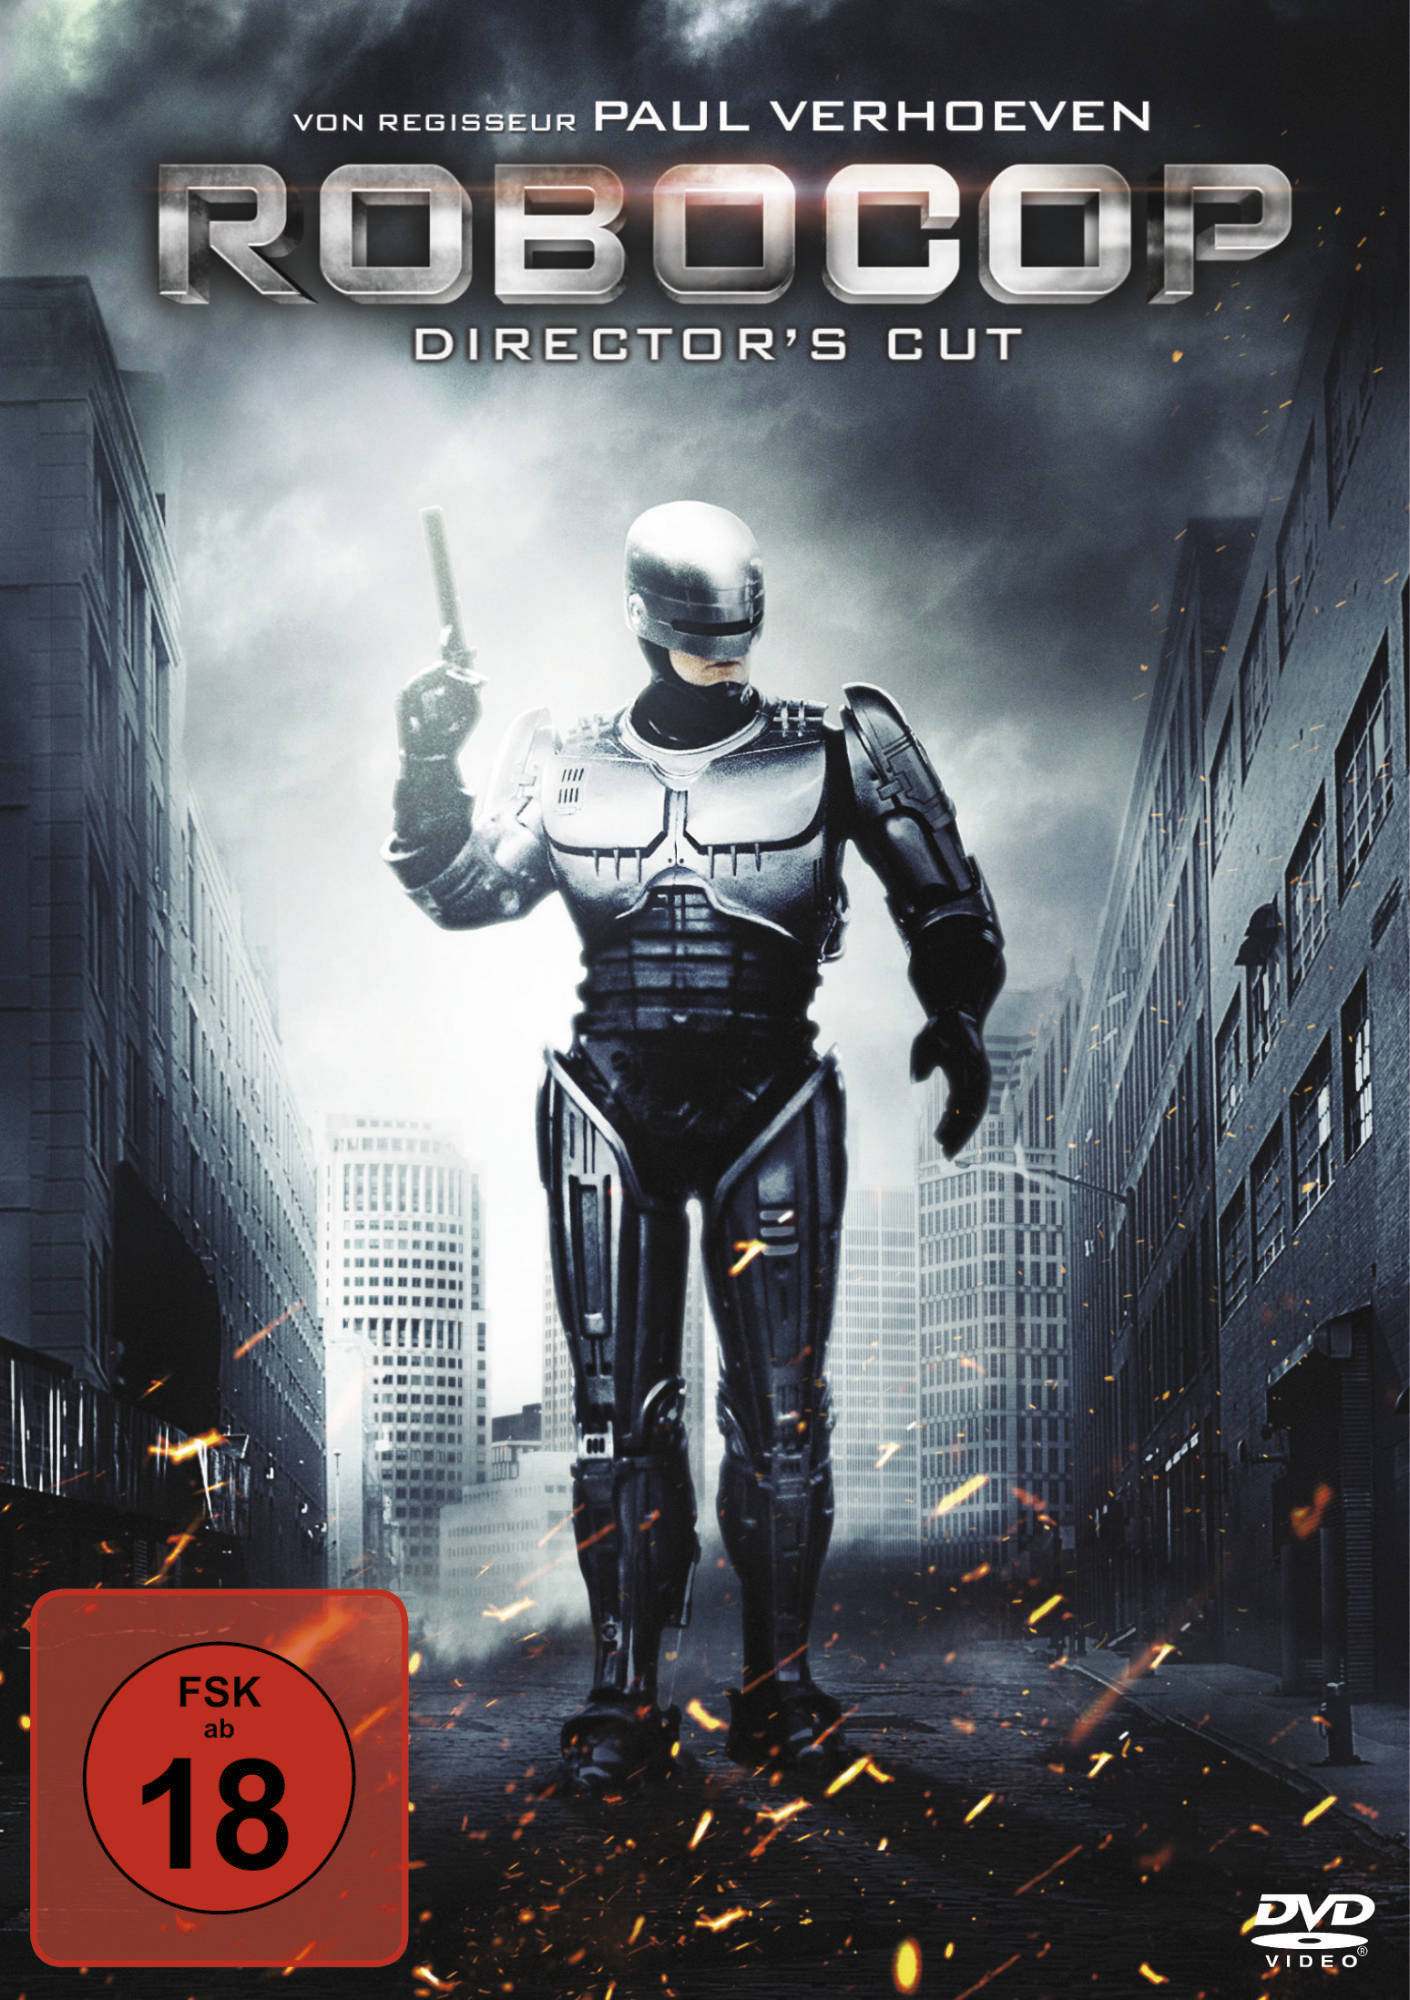 RoboCop Director's Cut (DVD)